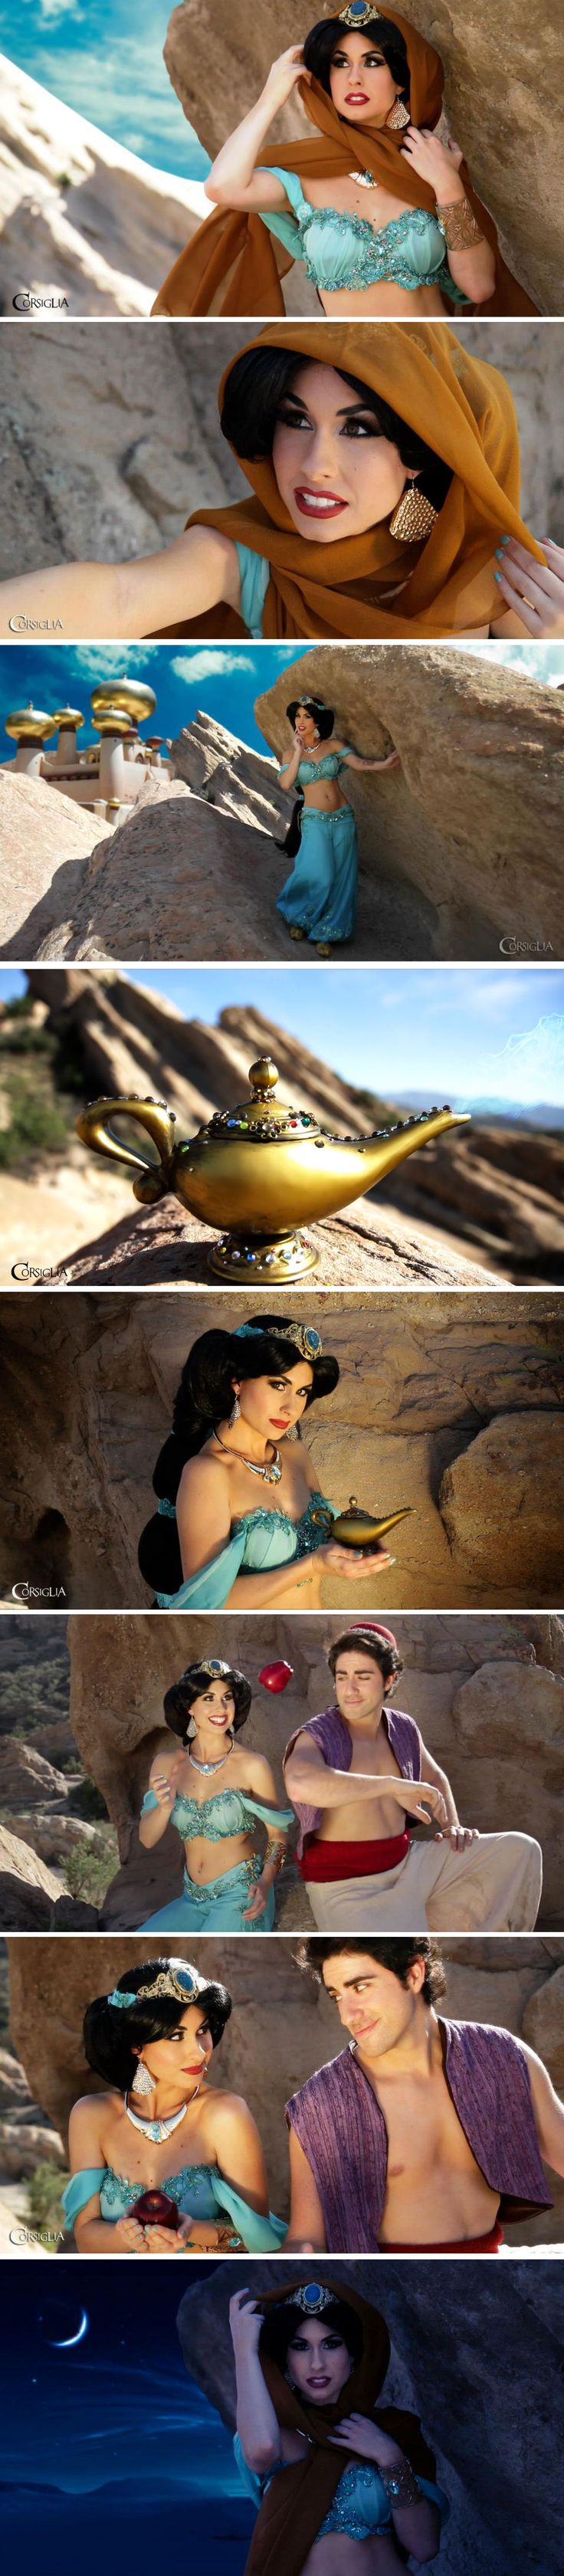 Disney's PRINCESS JASMINE cosplay by Traci Hines | thereallittlemermaid.deviantart.com/gallery/